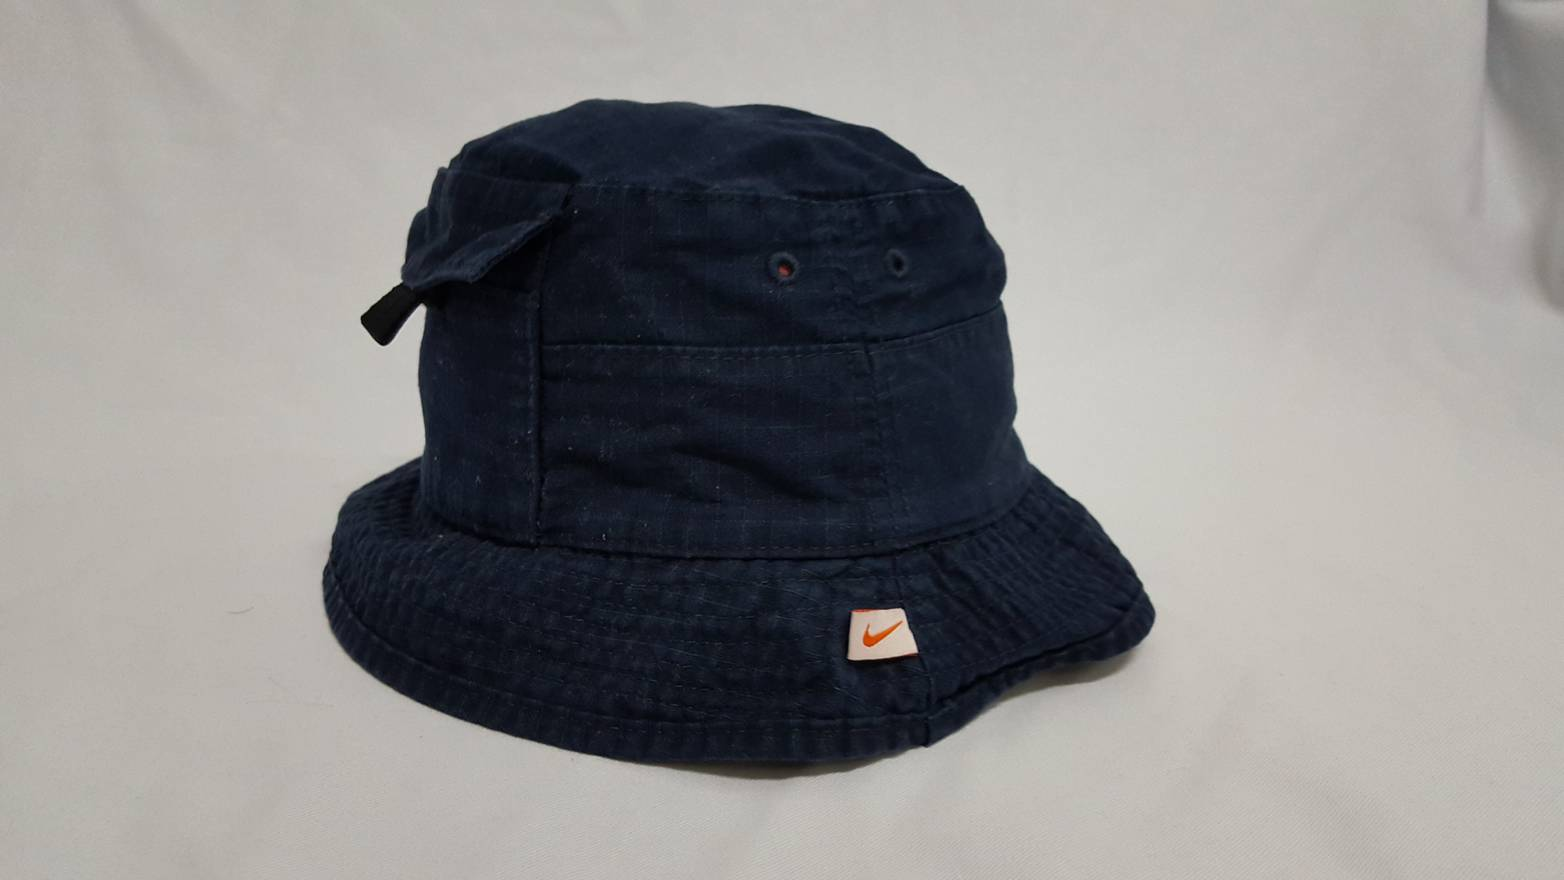 ffc1a98e60a ... cheap nike nike air bucket hat round cap with small pocket size one  size 3 96ed3